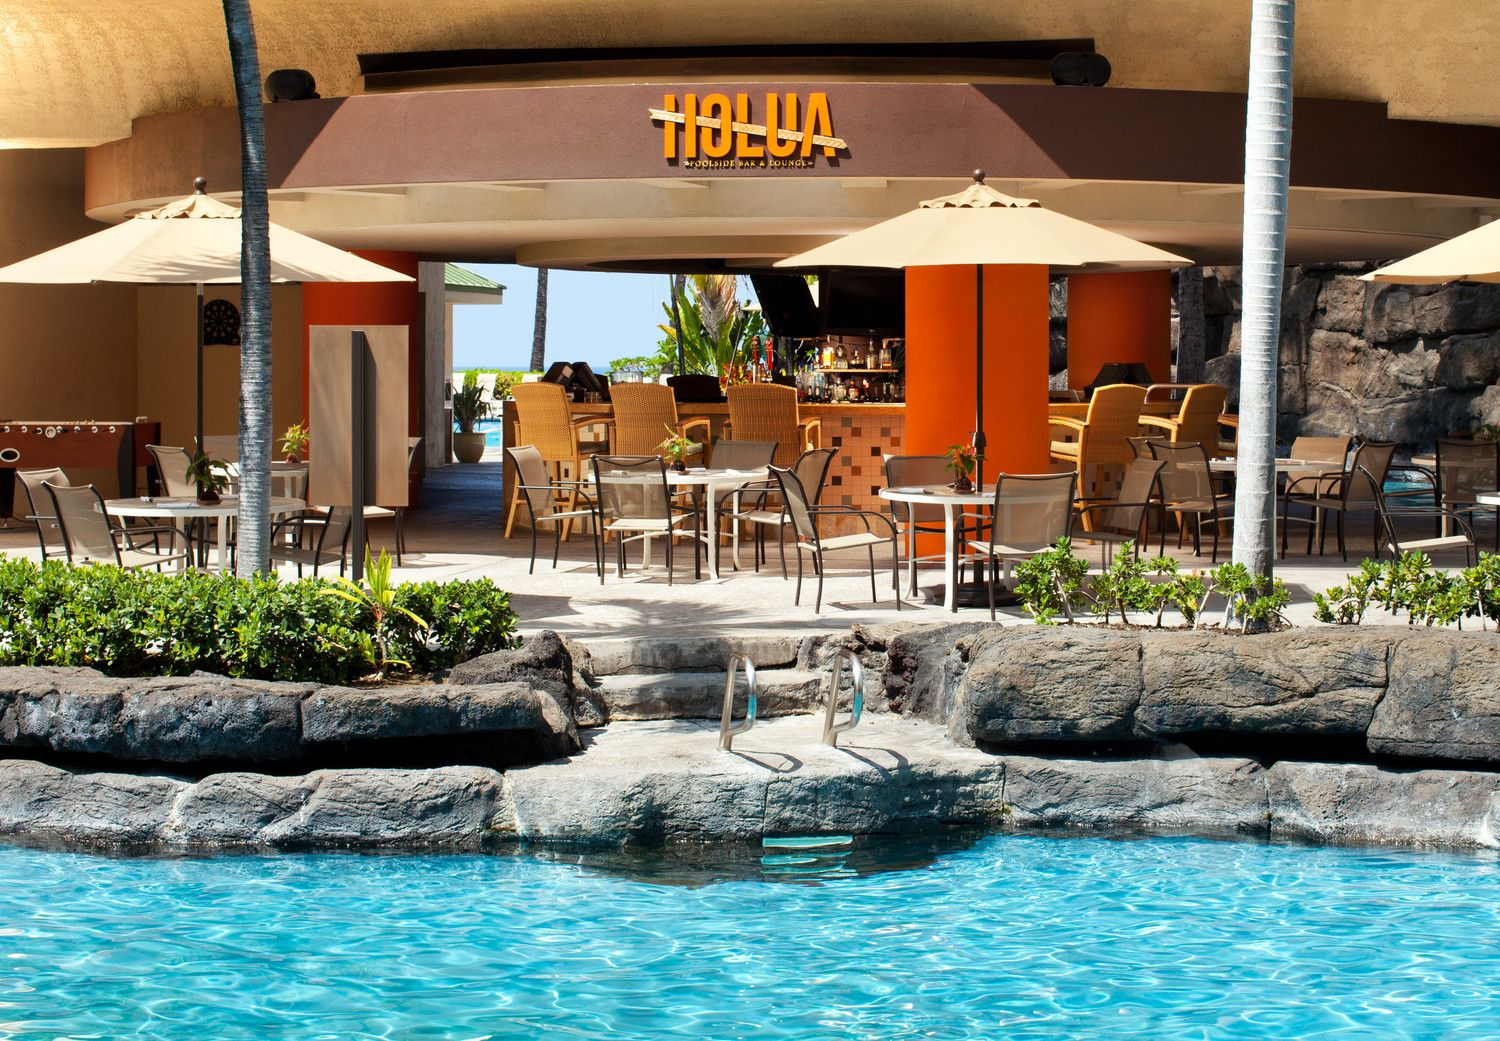 Kona Resorts - Holua Poolside Bar & Lounge